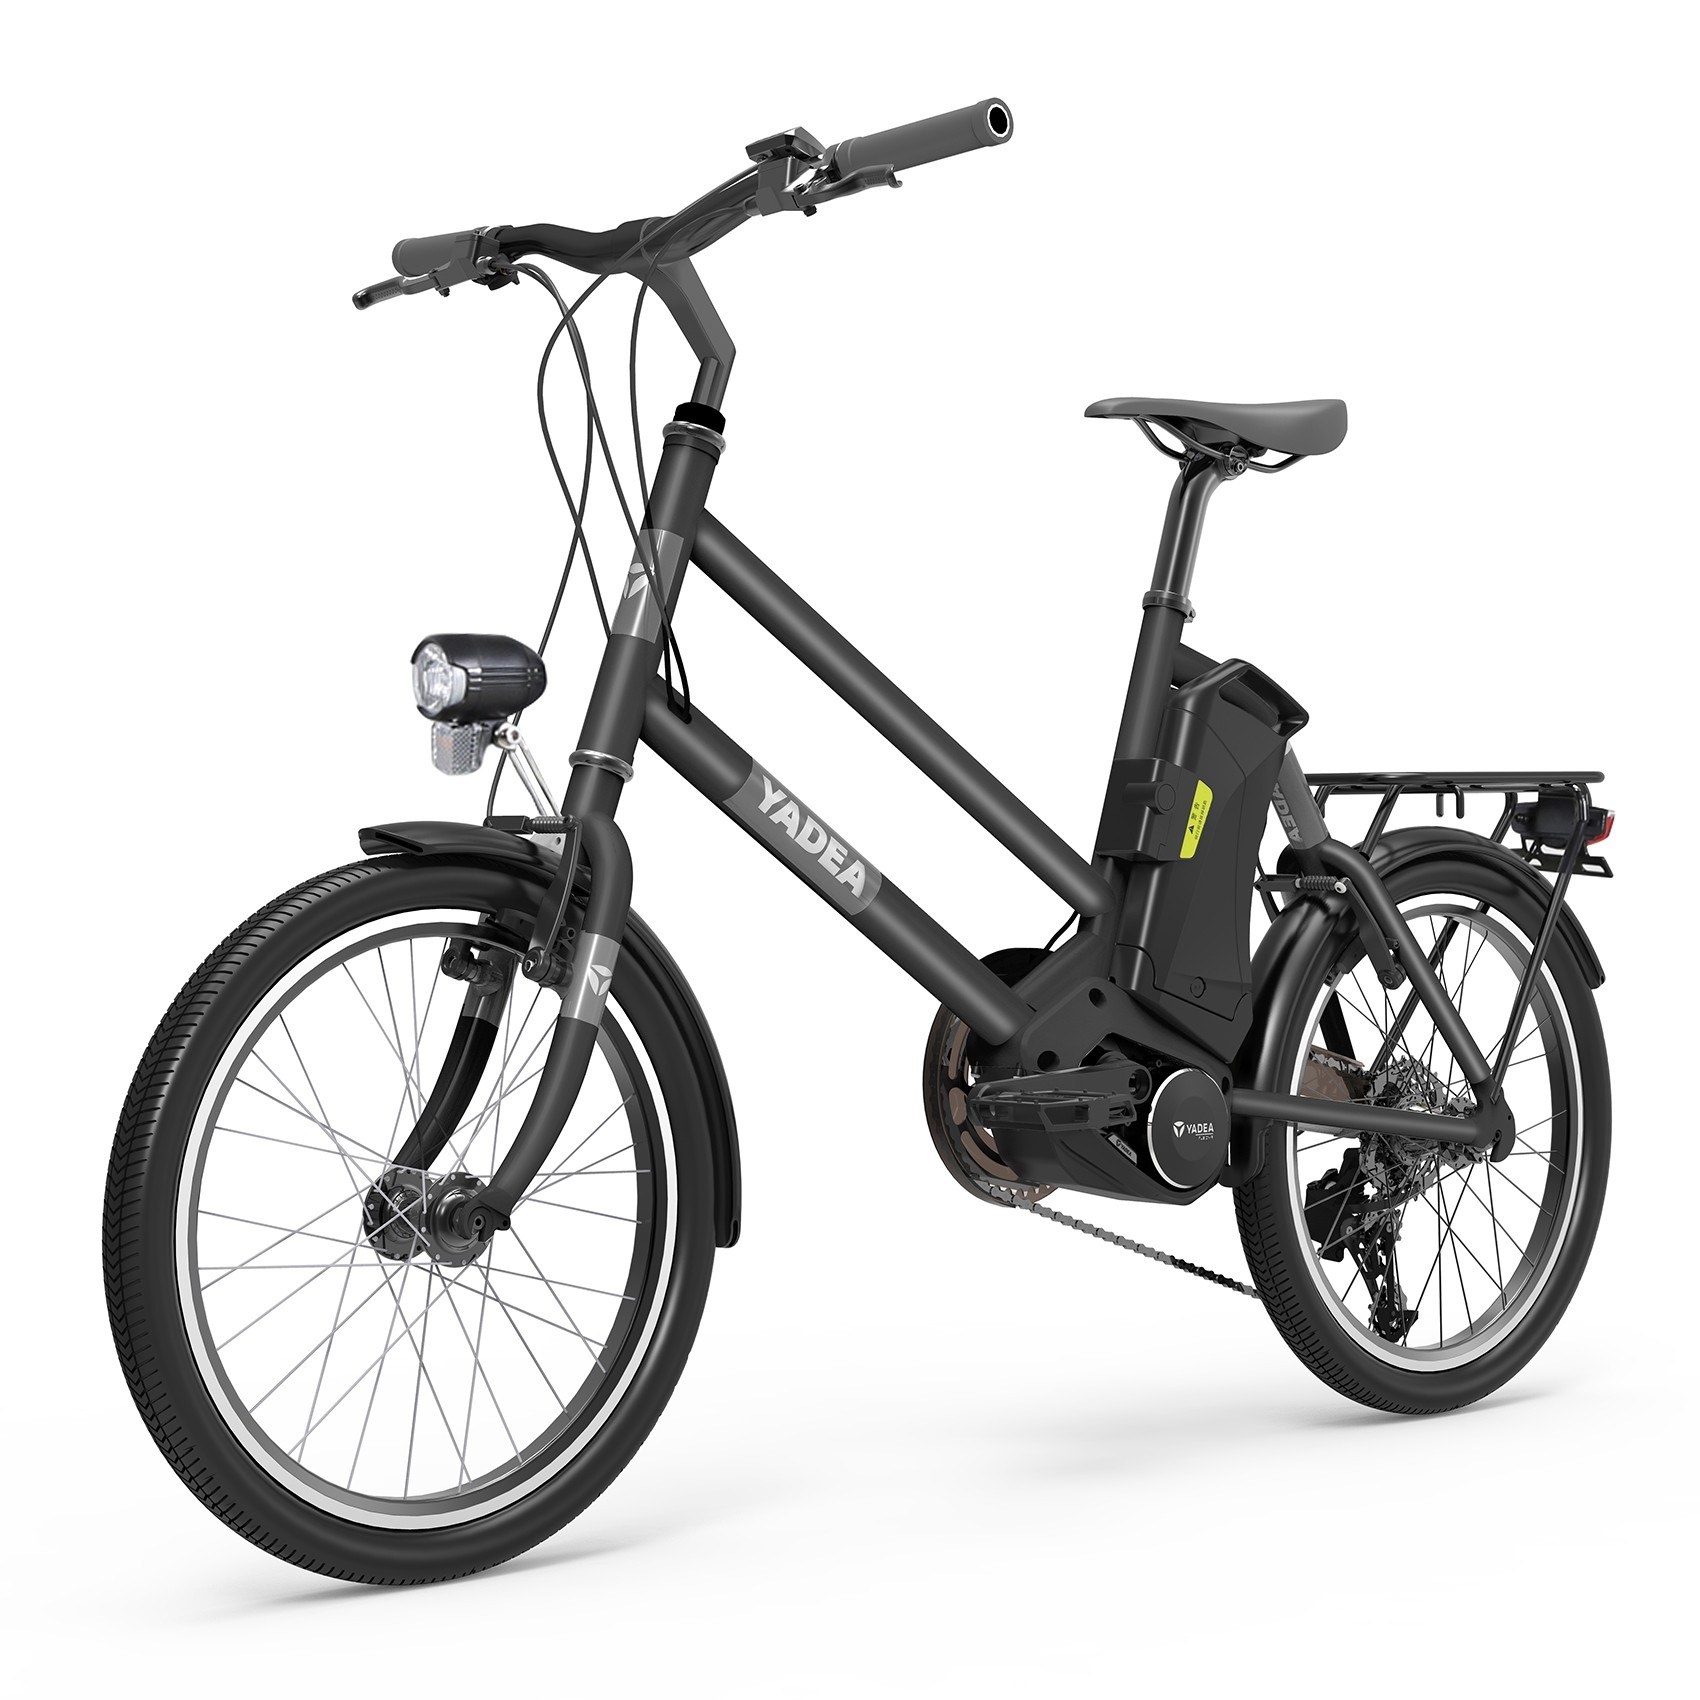 tomtop.com - [EU Warehouse] 48% OFF YADEA YT300 20Inch Electric City Bike with 7.8Ah Lithium-Battery, Free Shipping $976.46 (Inclusive of VAT)